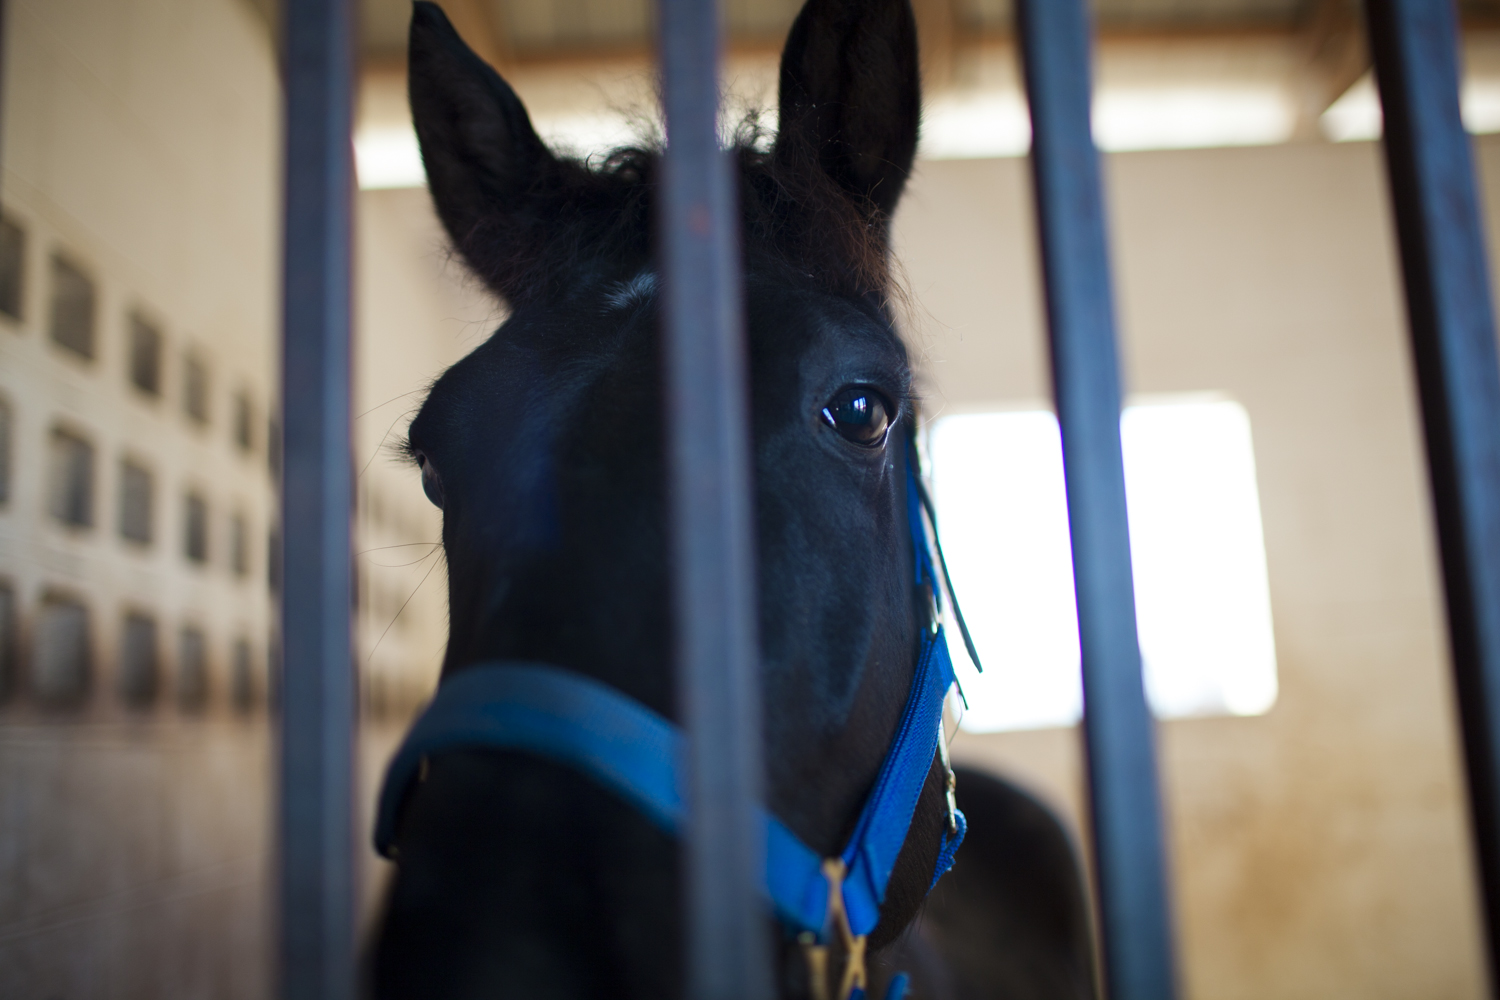 Shades of Cash, one of the 19 horses seized from Larry Wheelon's stables last spring, stands in a pen at McNutt Farm after being returned on November 8, 2013. (Credit: Adam McCauley)